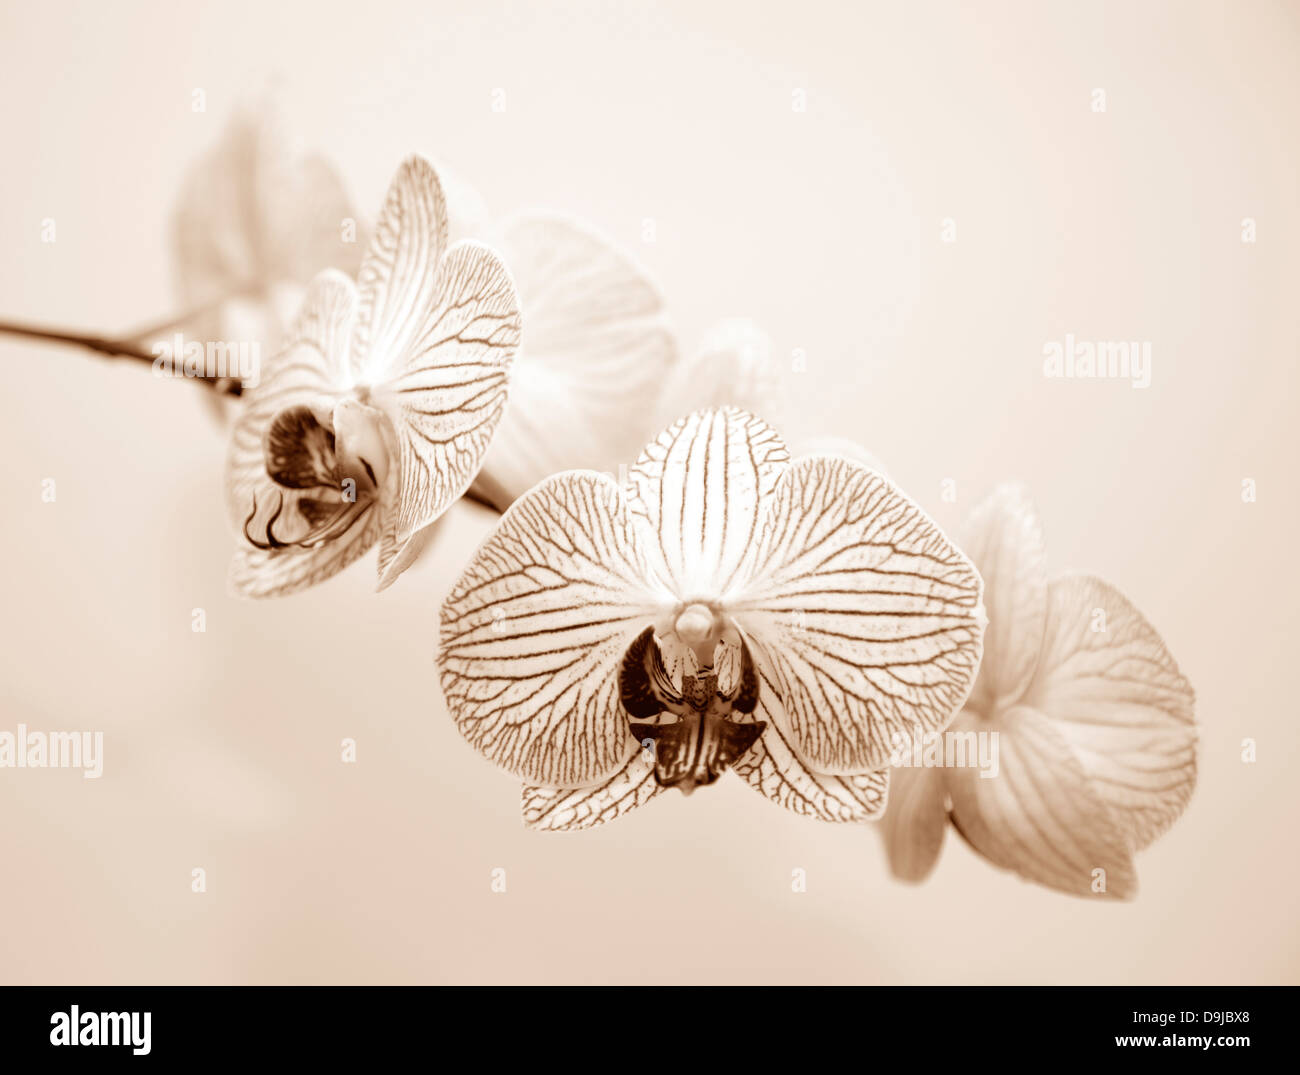 Orchid flowers in sepia tones Stock Photo